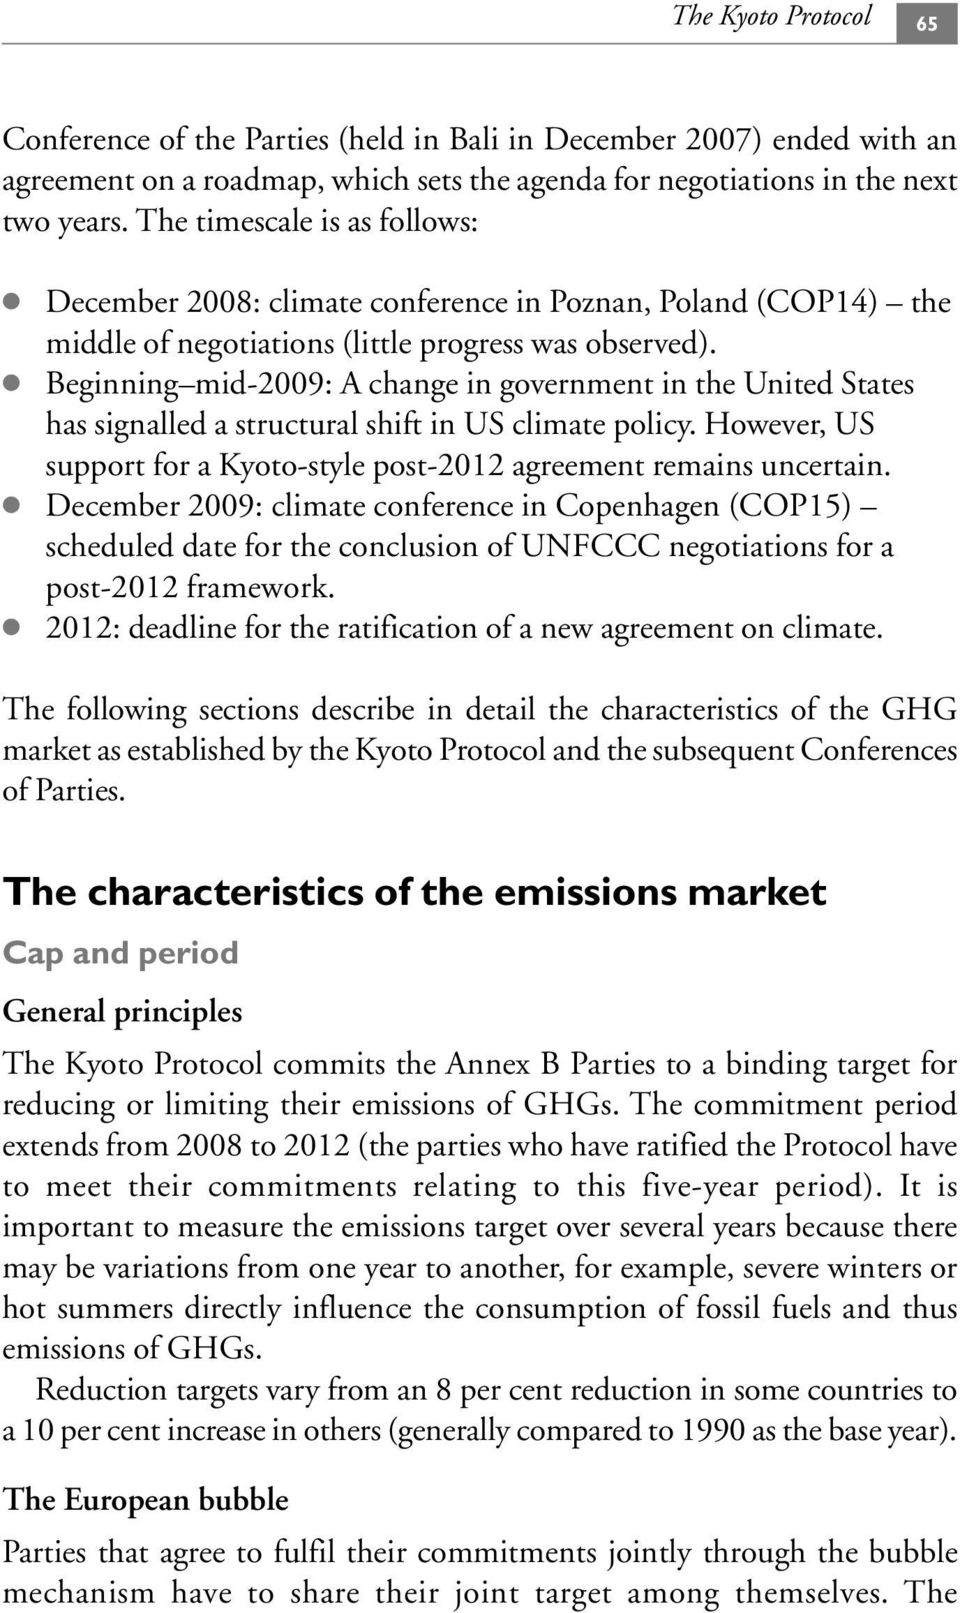 Beginning mid-2009: A change in government in the United States has signalled a structural shift in US climate policy. However, US support for a Kyoto-style post-2012 agreement remains uncertain.